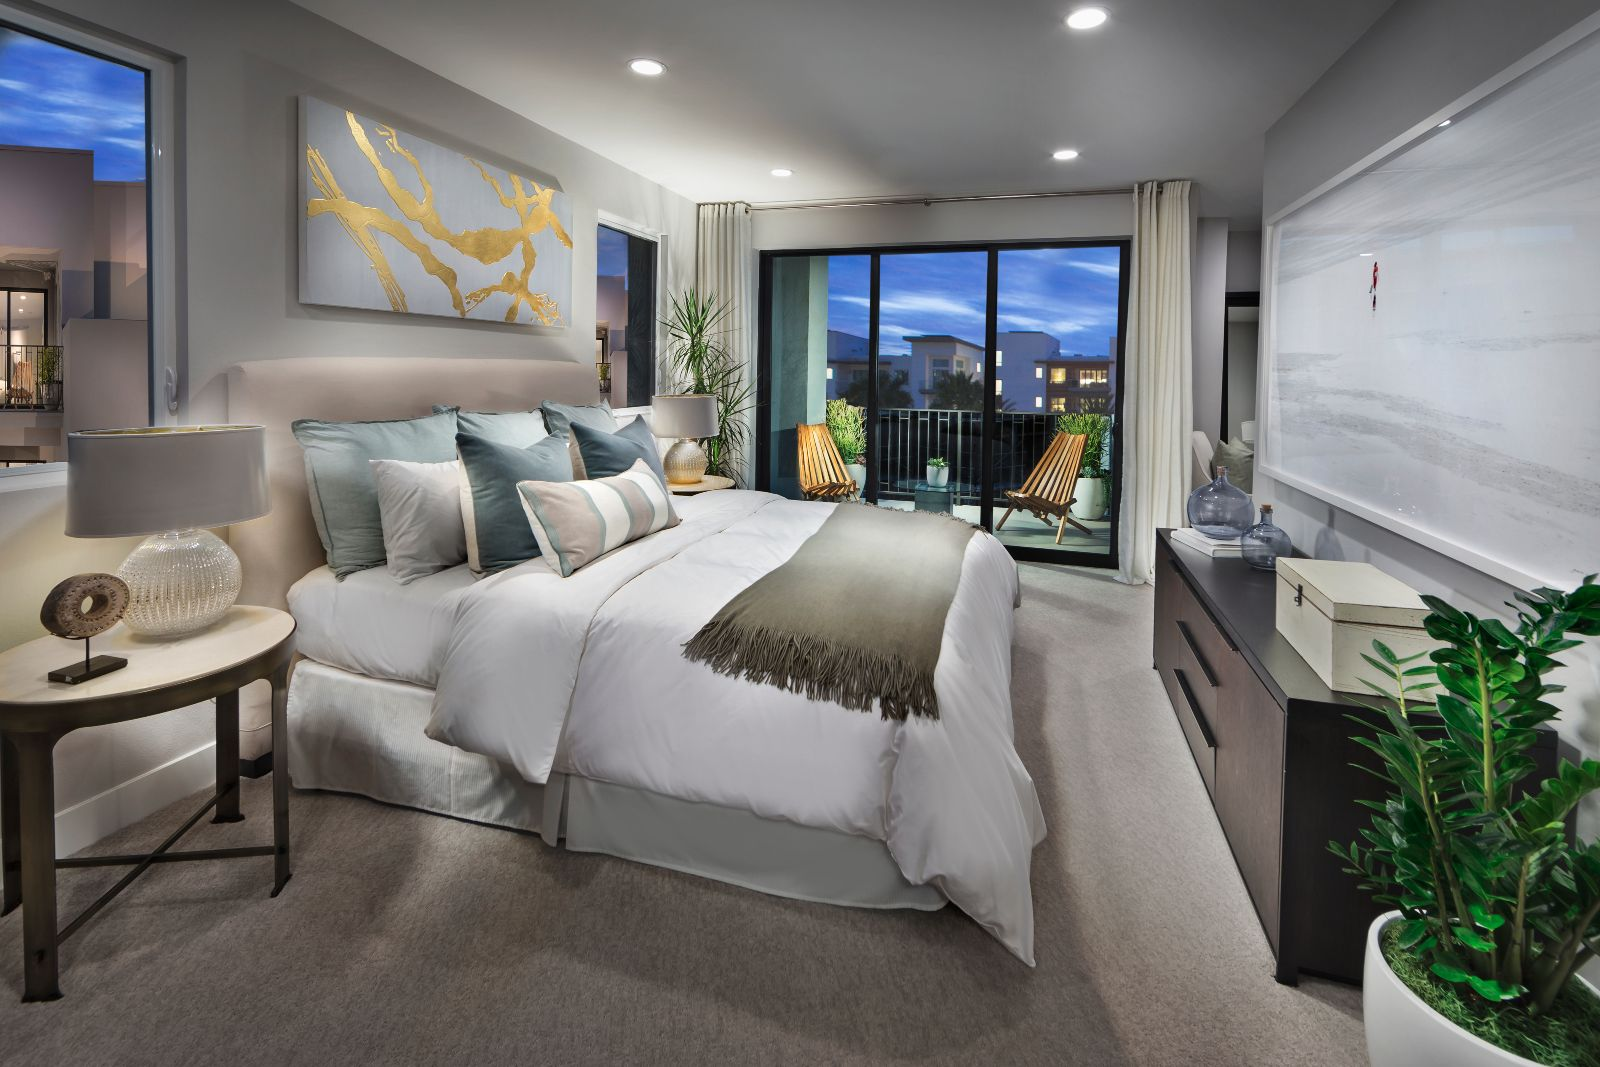 master-bedroom-residence-1-new-home-the-collection-at-playa-vista-1600x1067.jpg